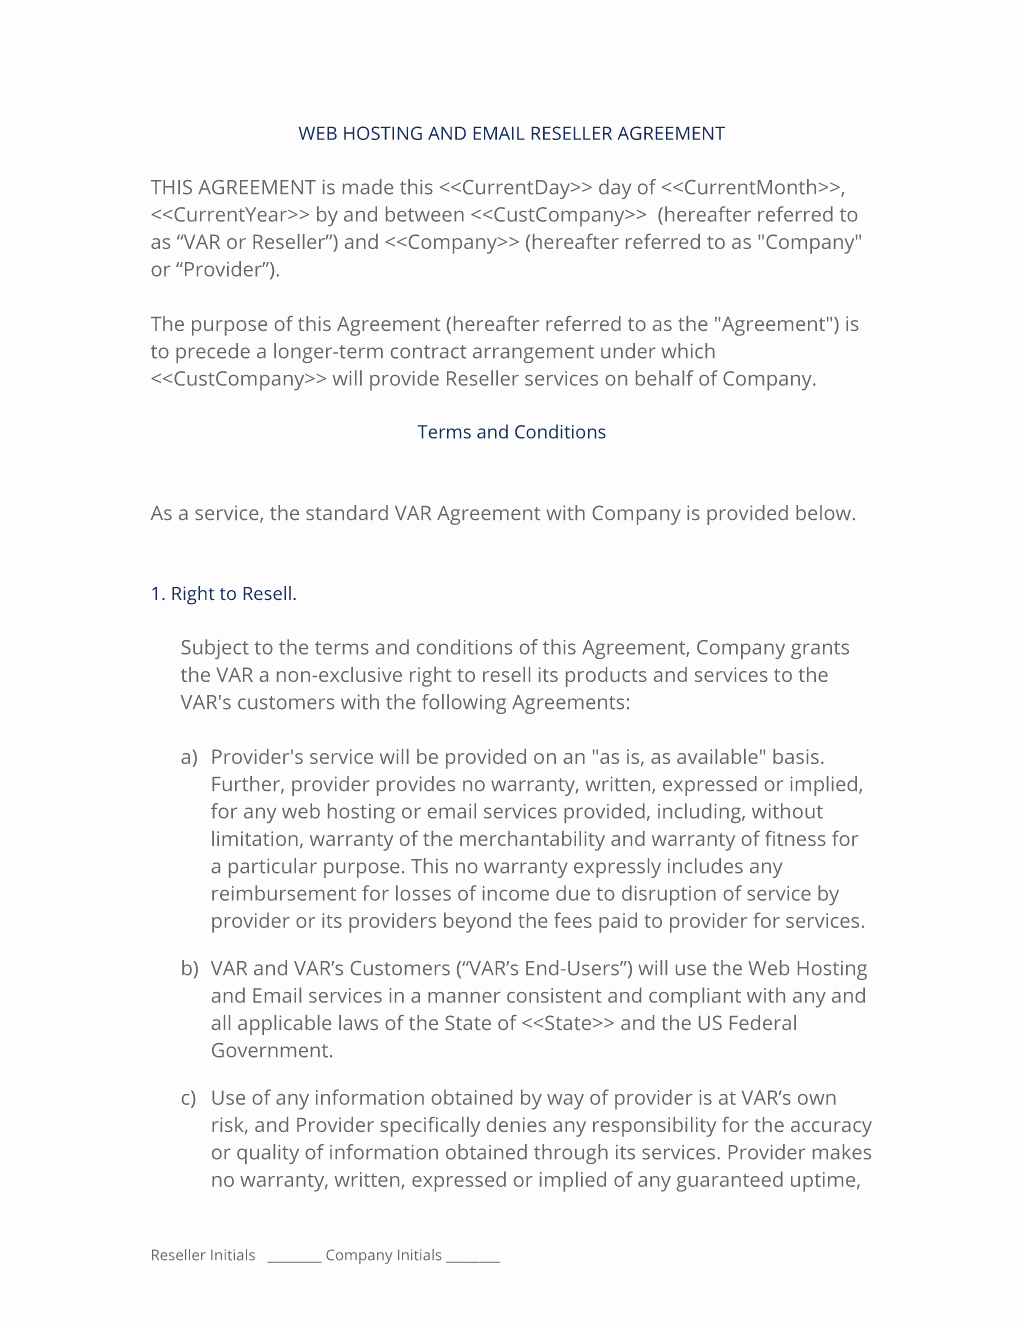 Software Reseller Agreement Template Unique Web Site Hosting Reseller Short form Contract 3 Easy Steps